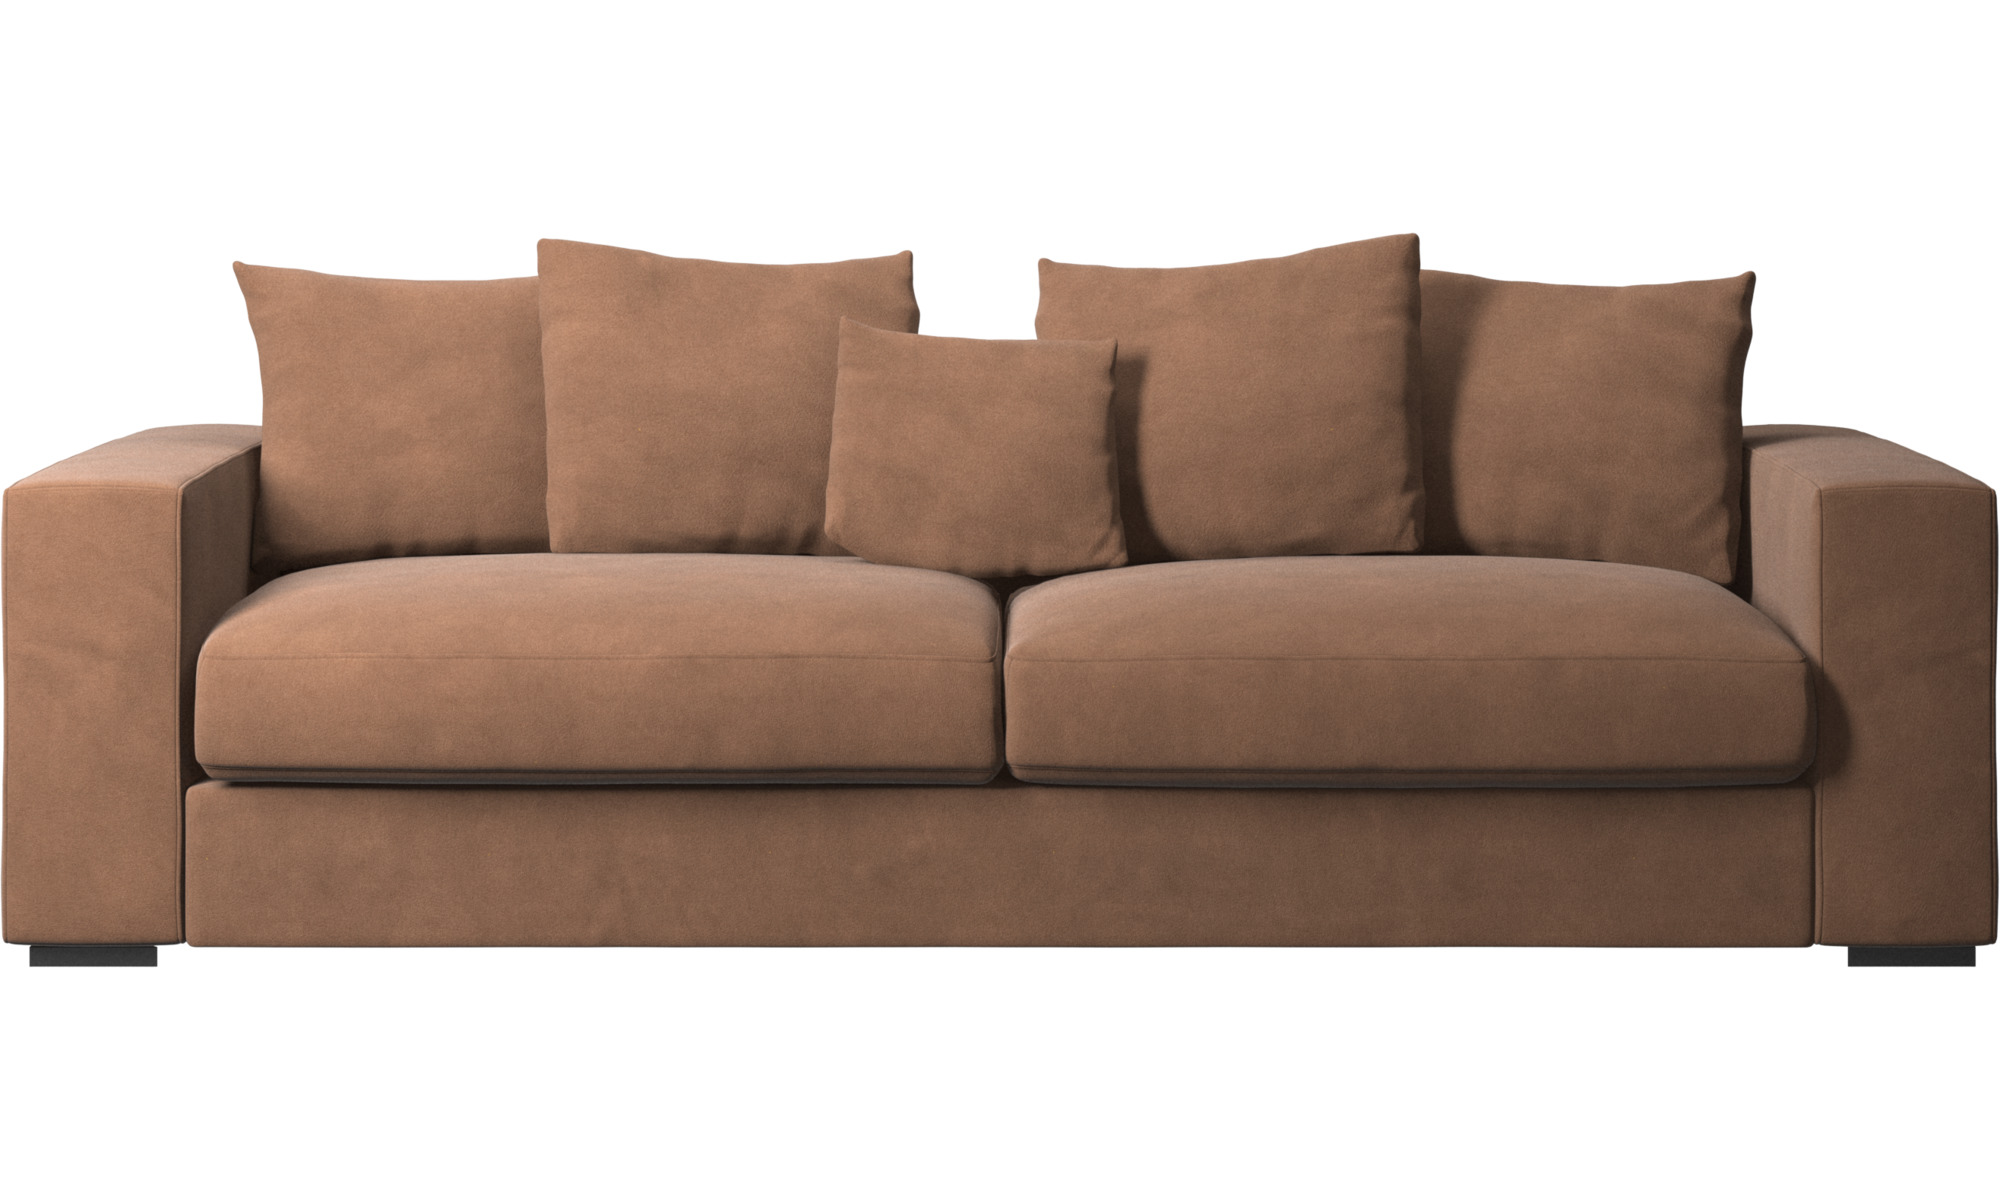 3 seater sofas cenova sofa boconcept for Divan and settee